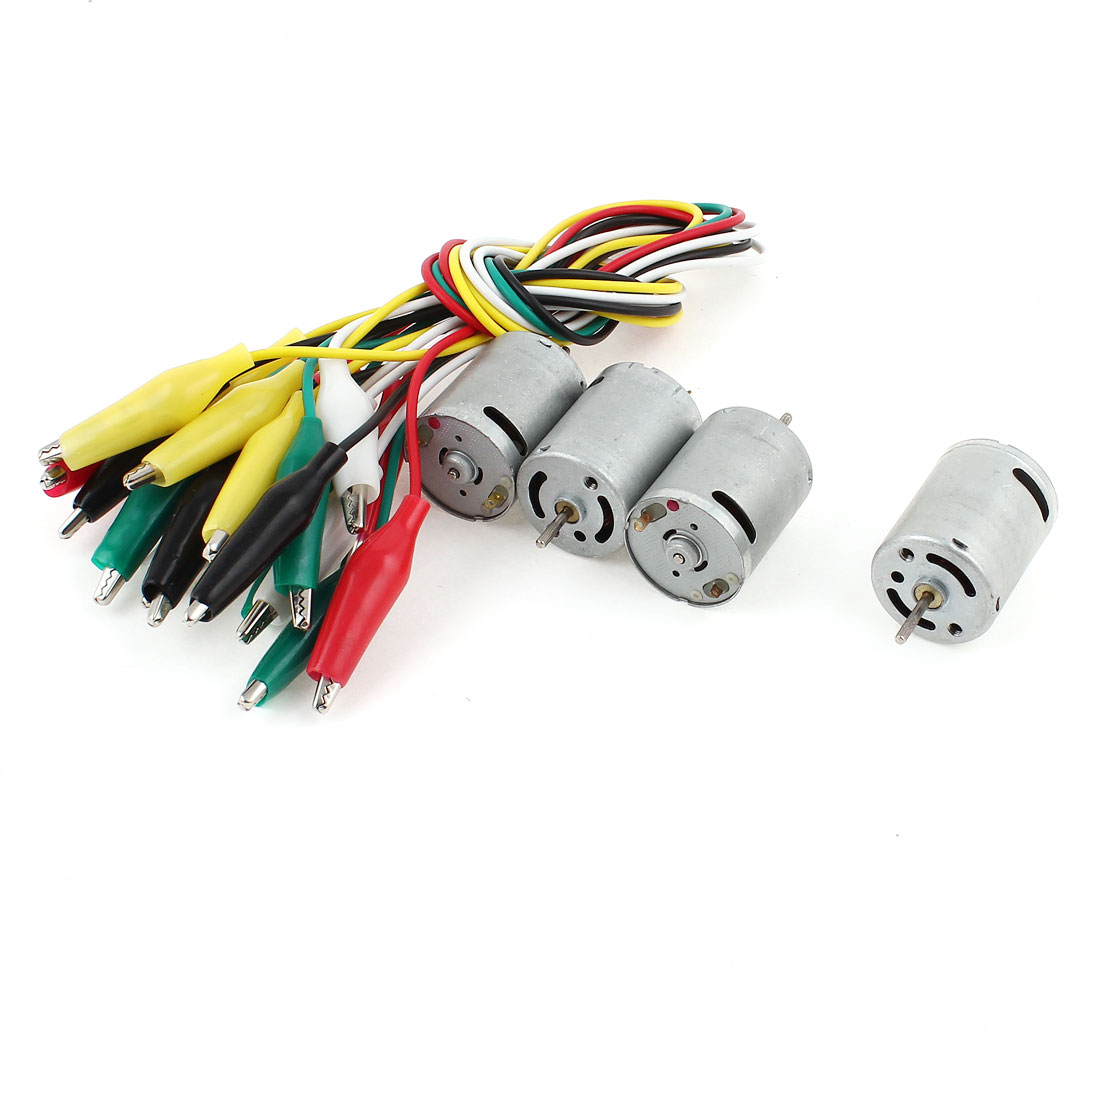 4 Pcs DC 3V Magnetic Electric Motor 3000RPM w 10 Pieces Alligator Clip Wire